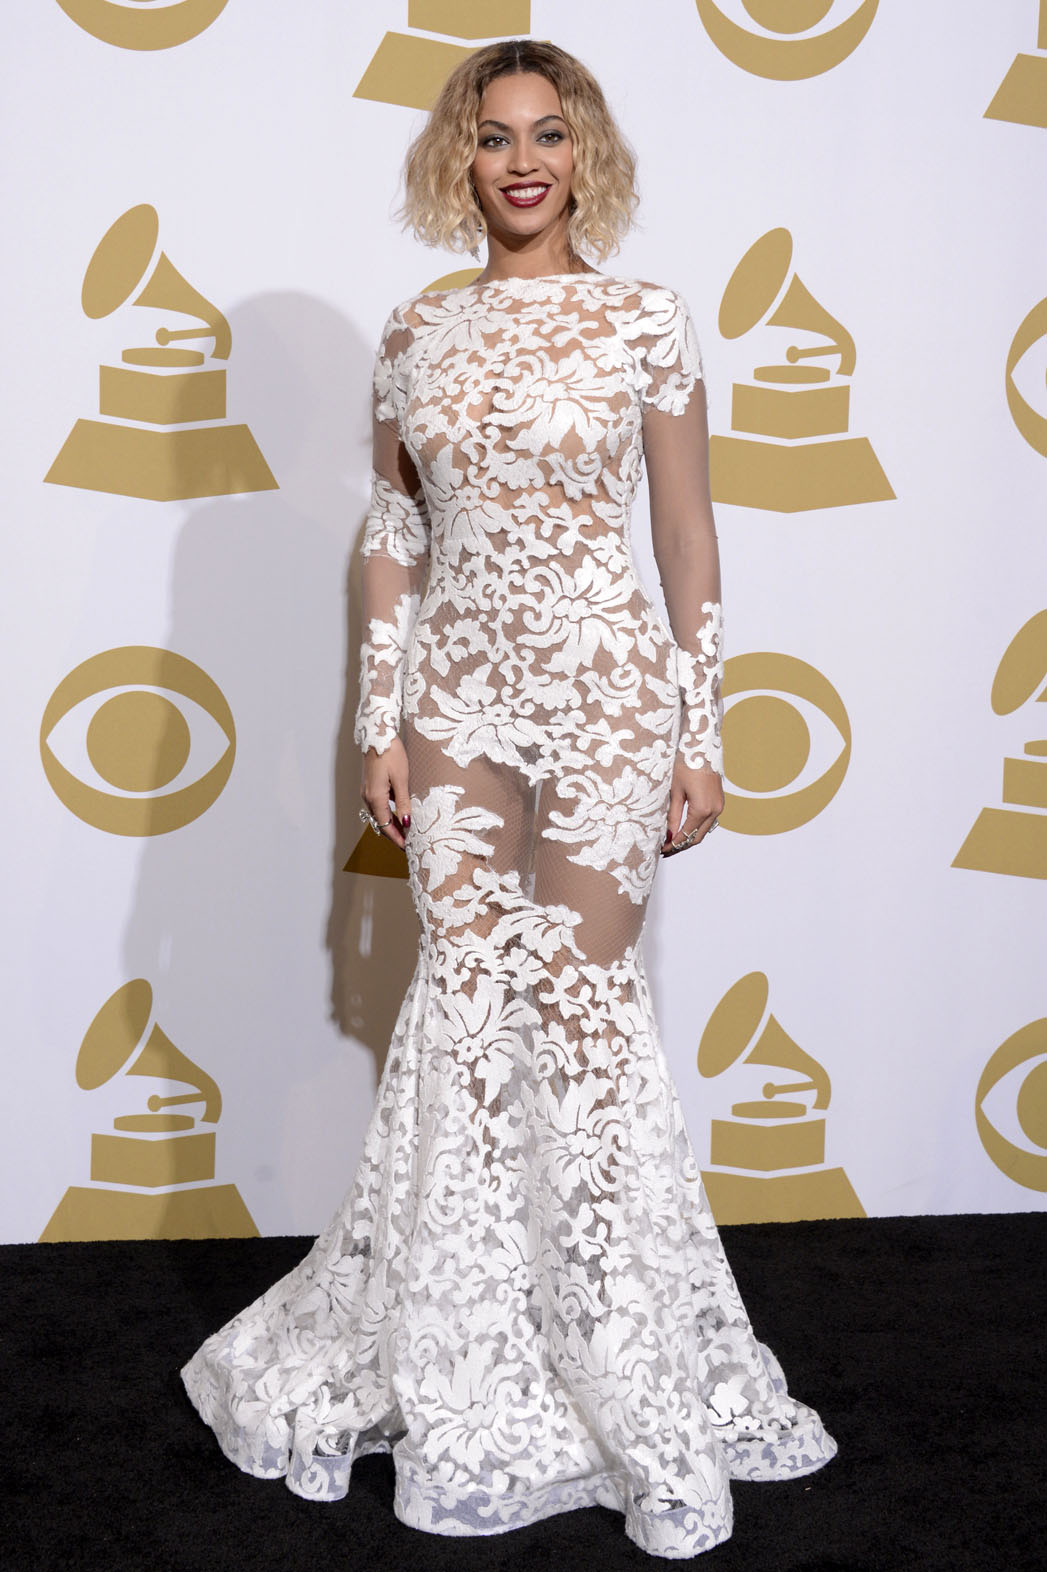 Beyonce's Grammys Dress Designer: 'I Love Nakedness' | The Hollywood Reporter